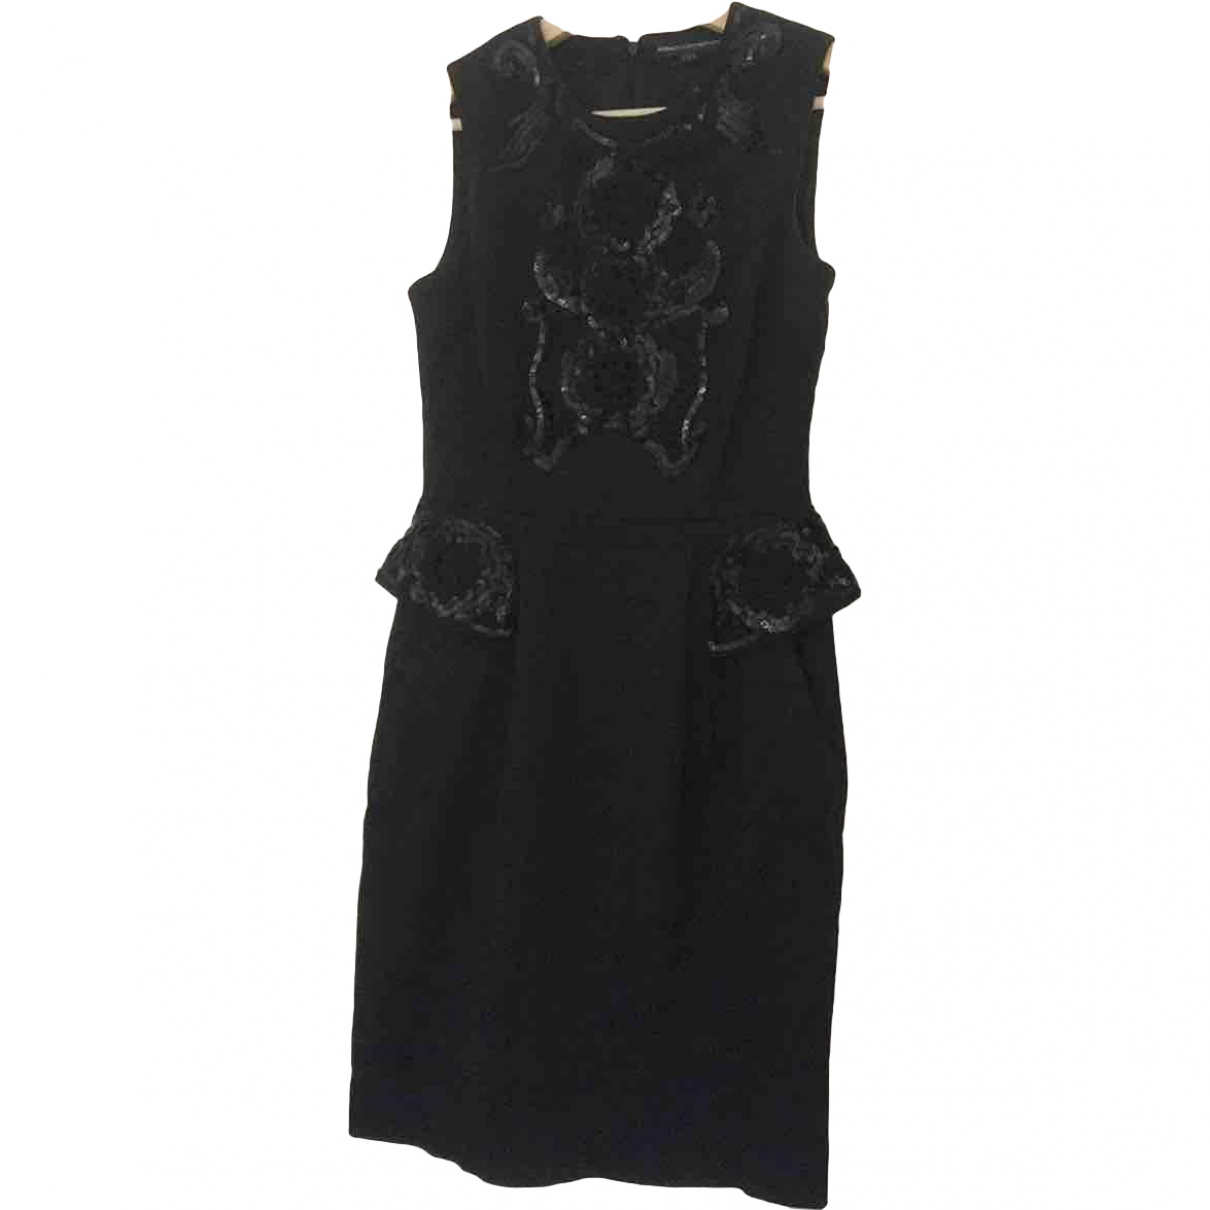 French Connection \N Black Cotton dress for Women 36 FR